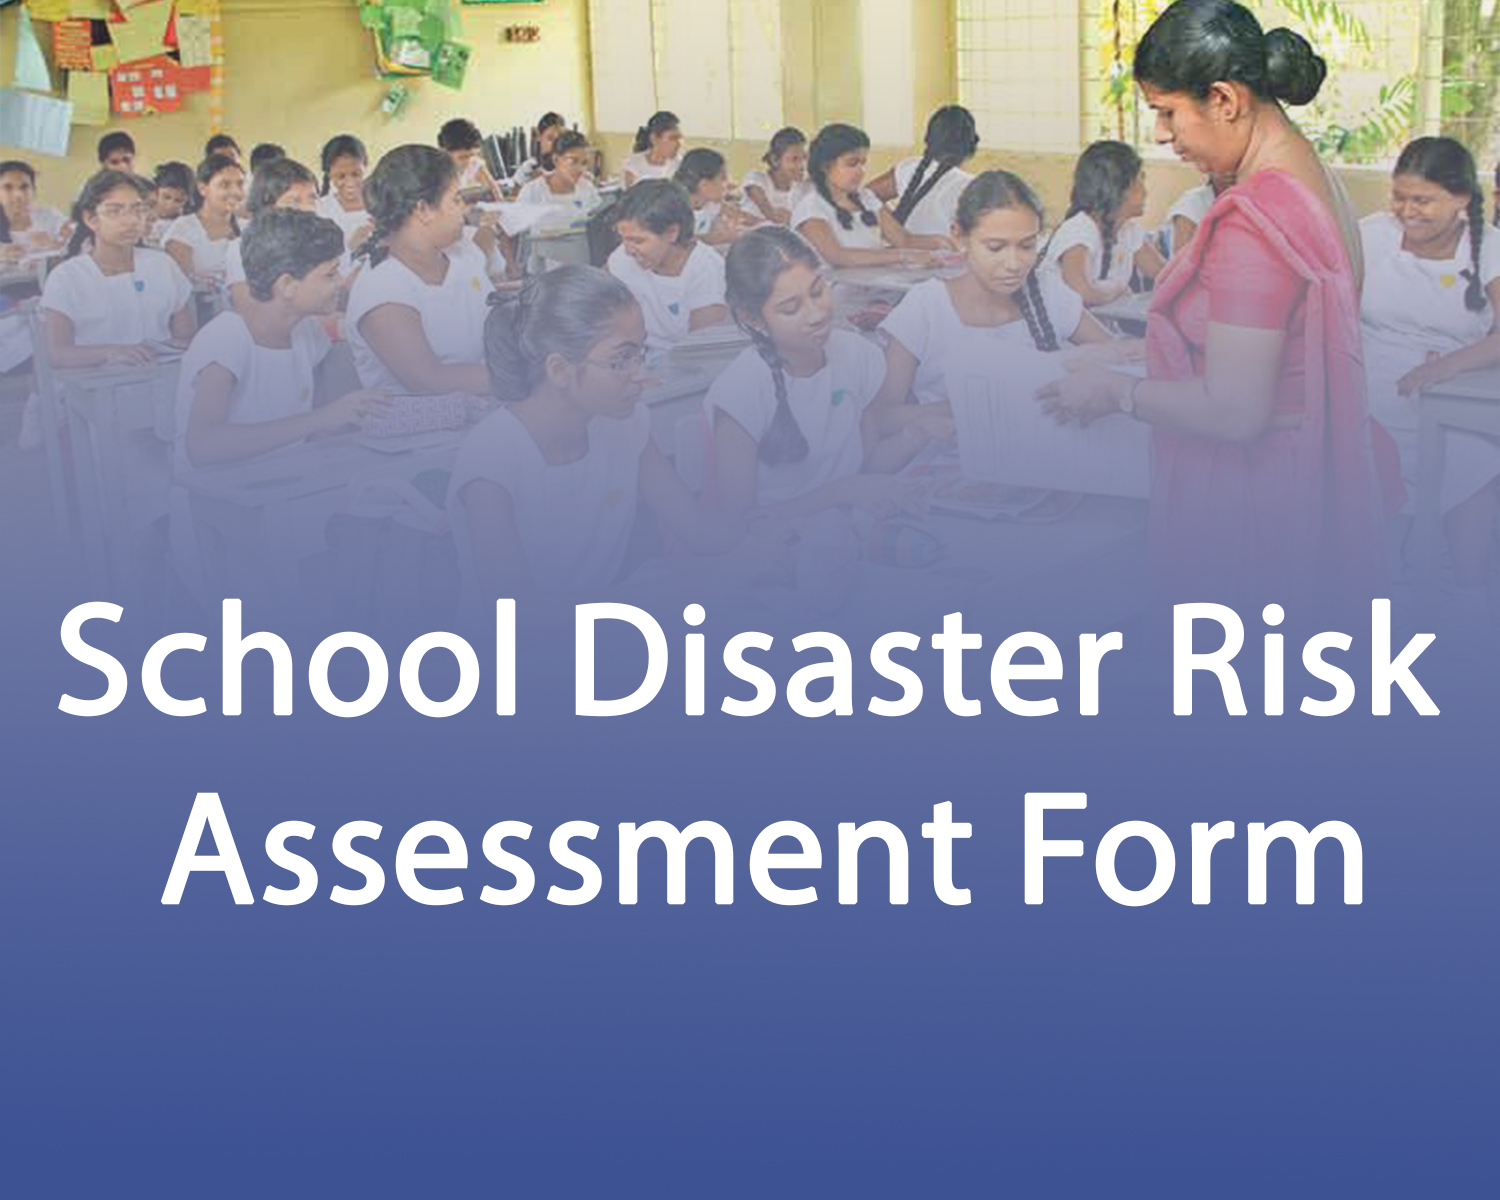 School Disaster Risk